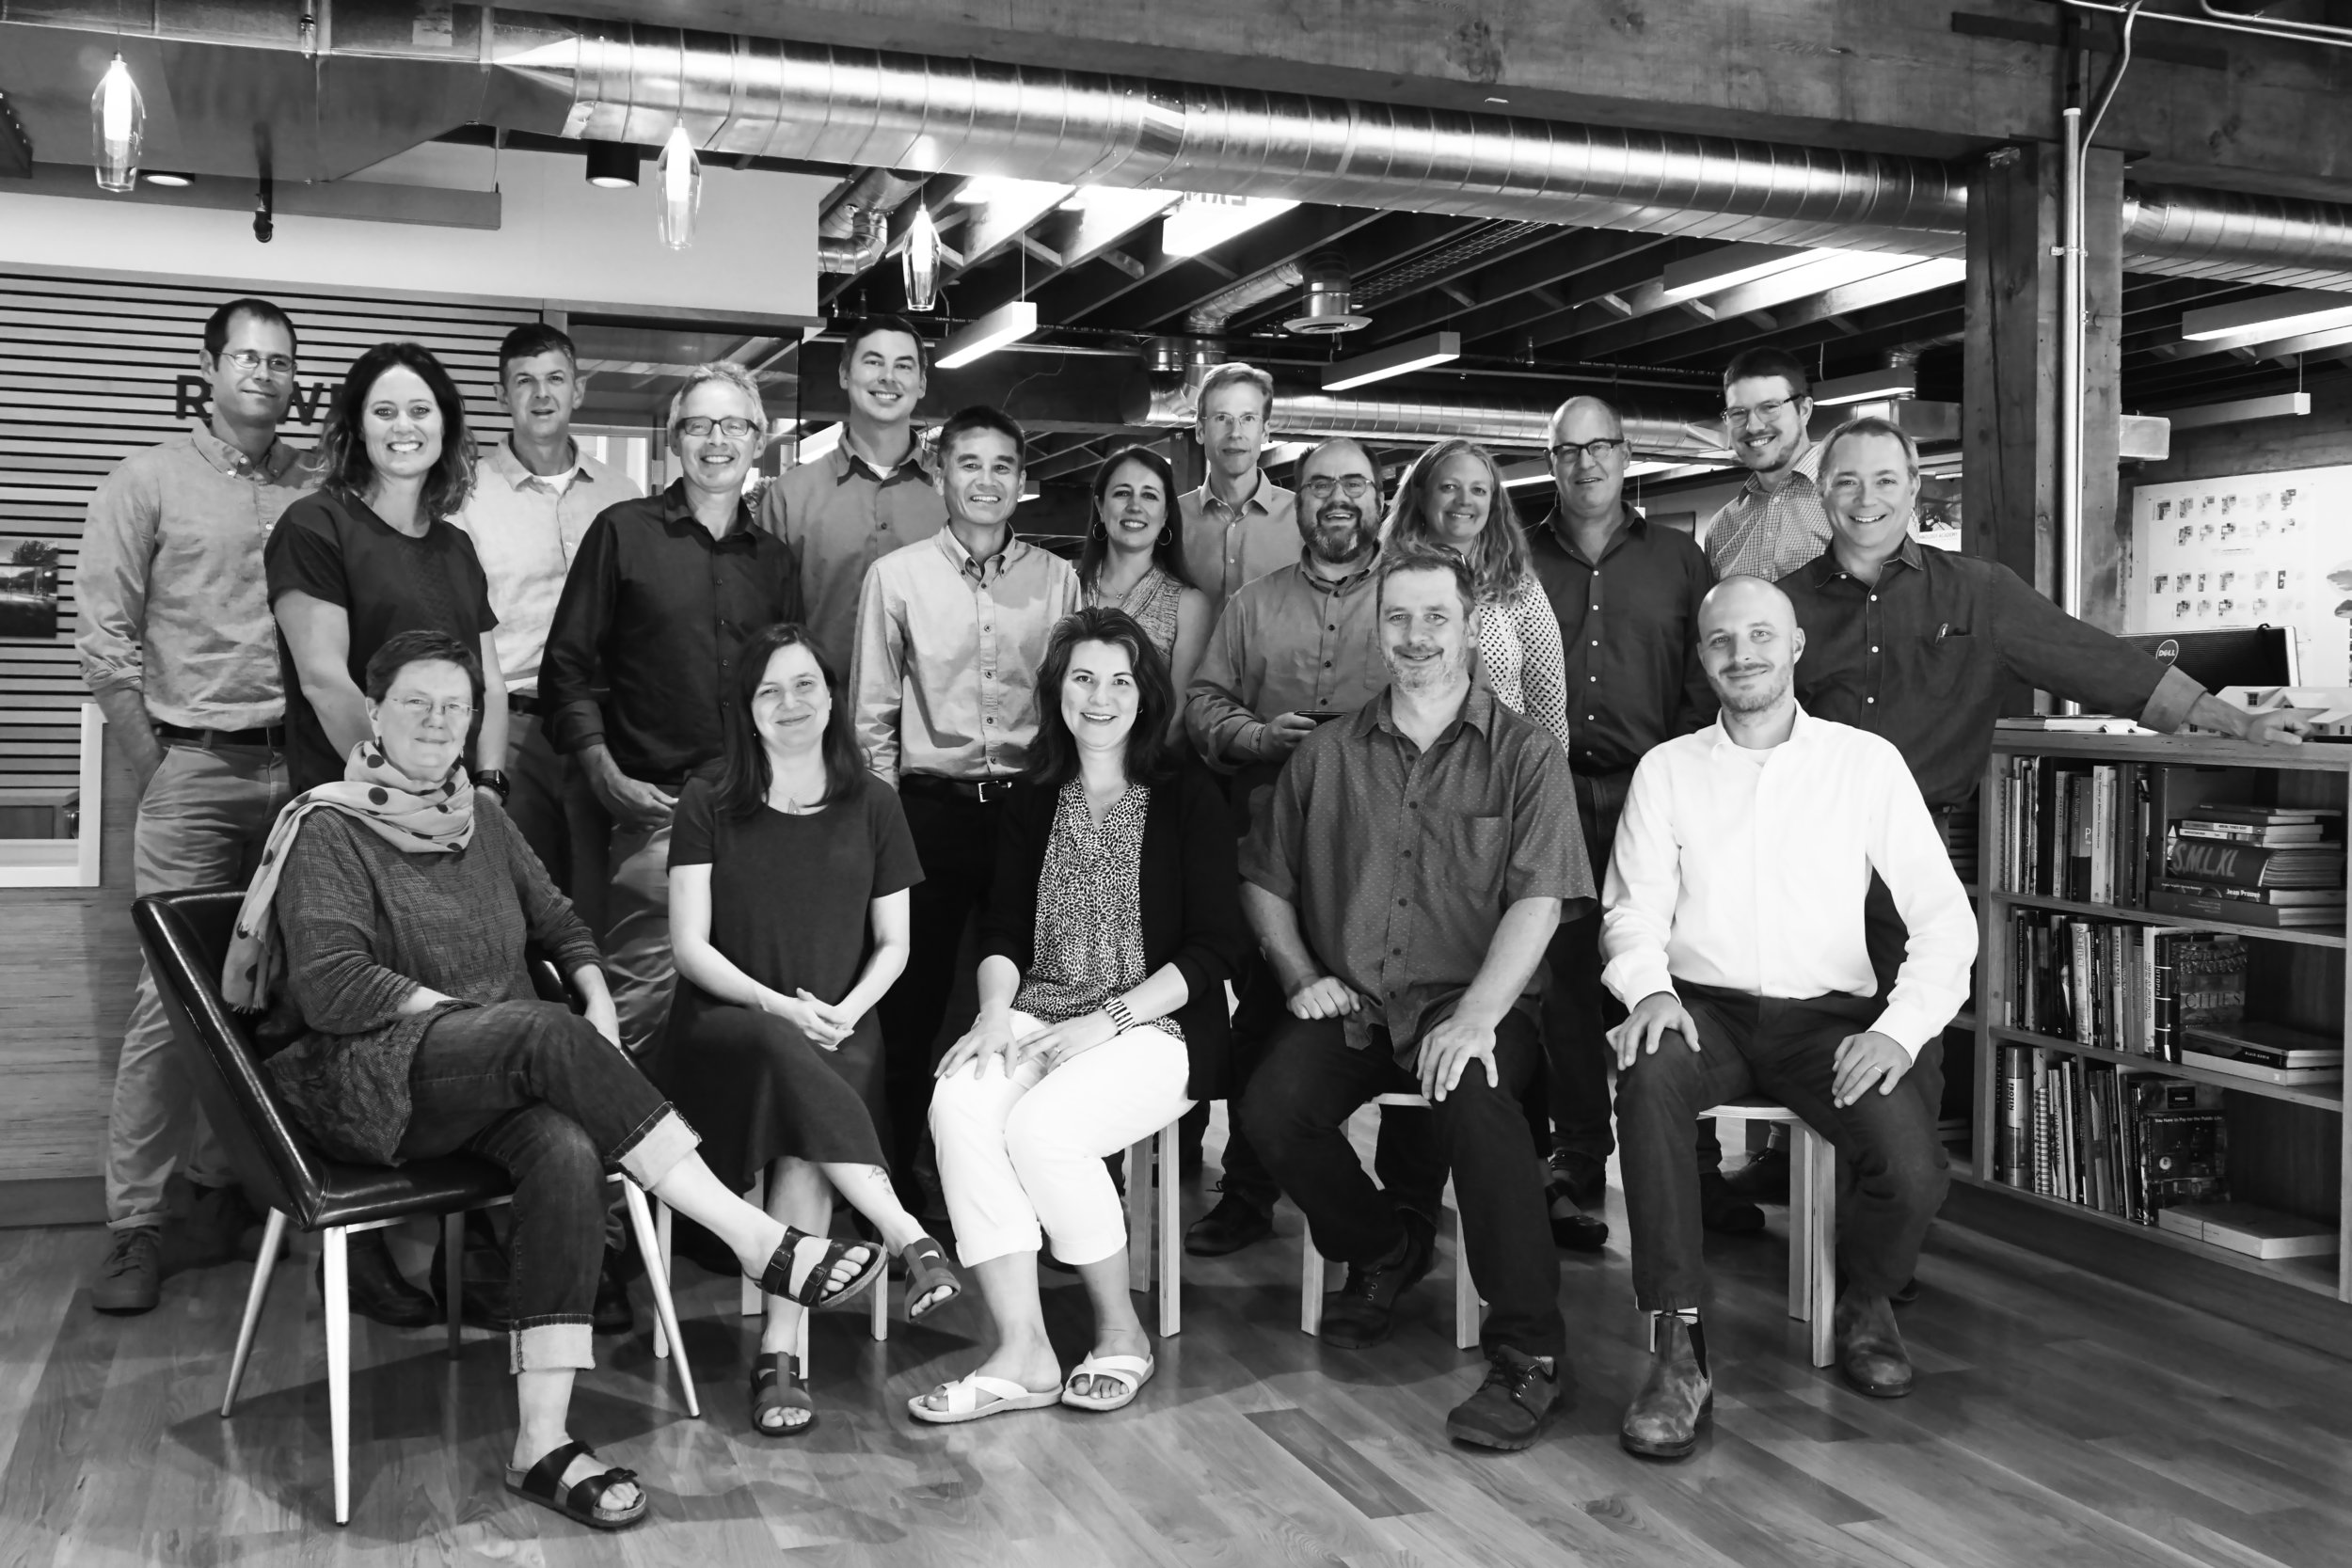 RBA Staff Photo 3-bw.jpg